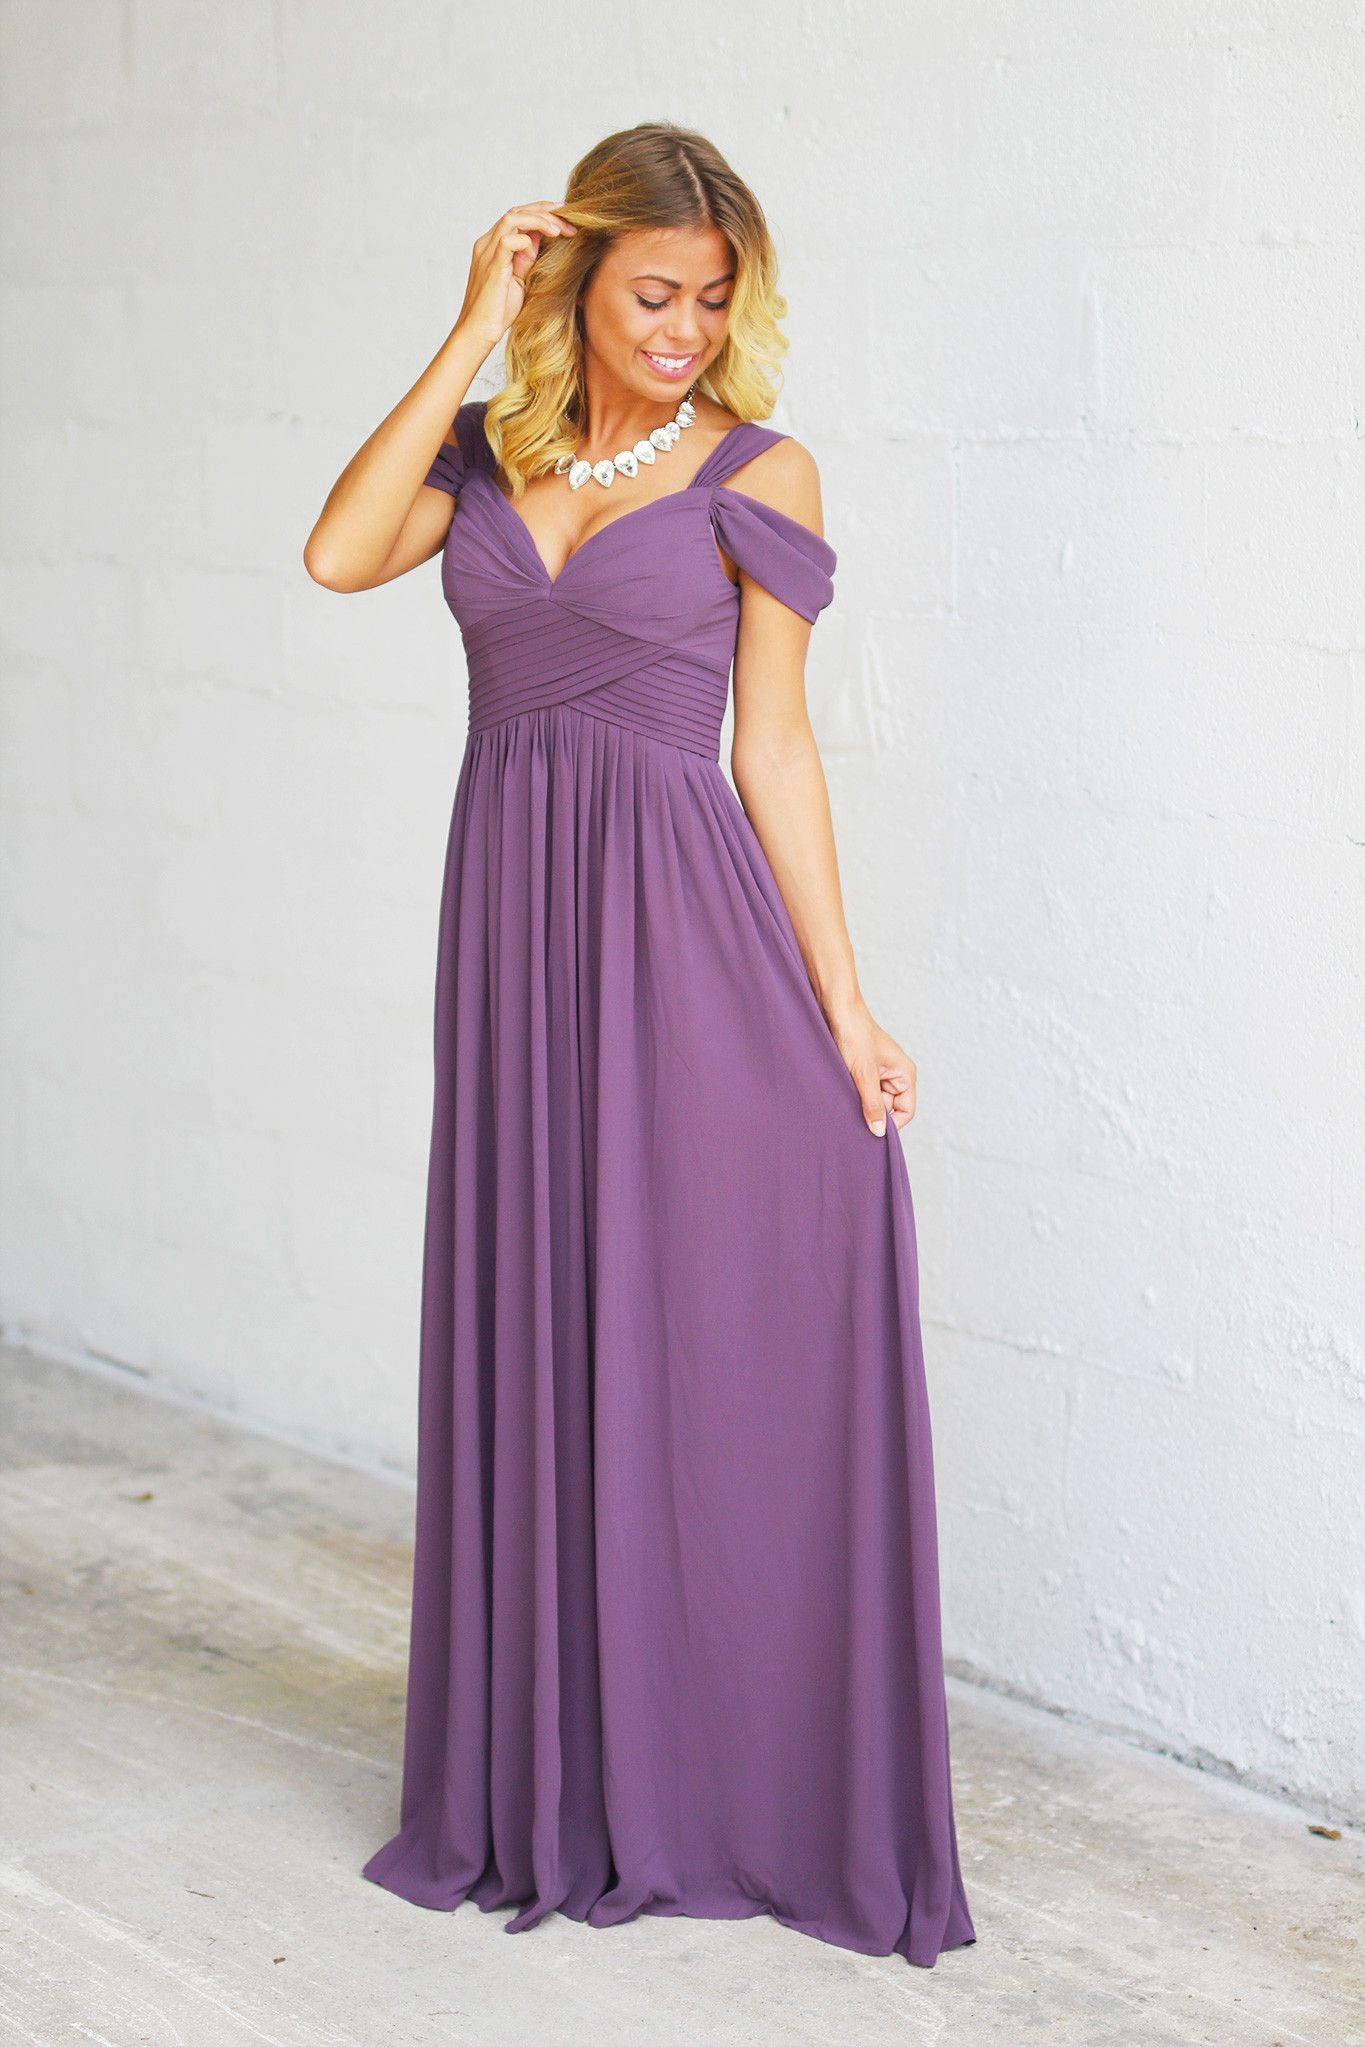 e706fb23c2 You will look incredibly stunning in this new Dusty Purple Off Shoulder Maxi  Dress. We love the elegant and regal off shoulder style!